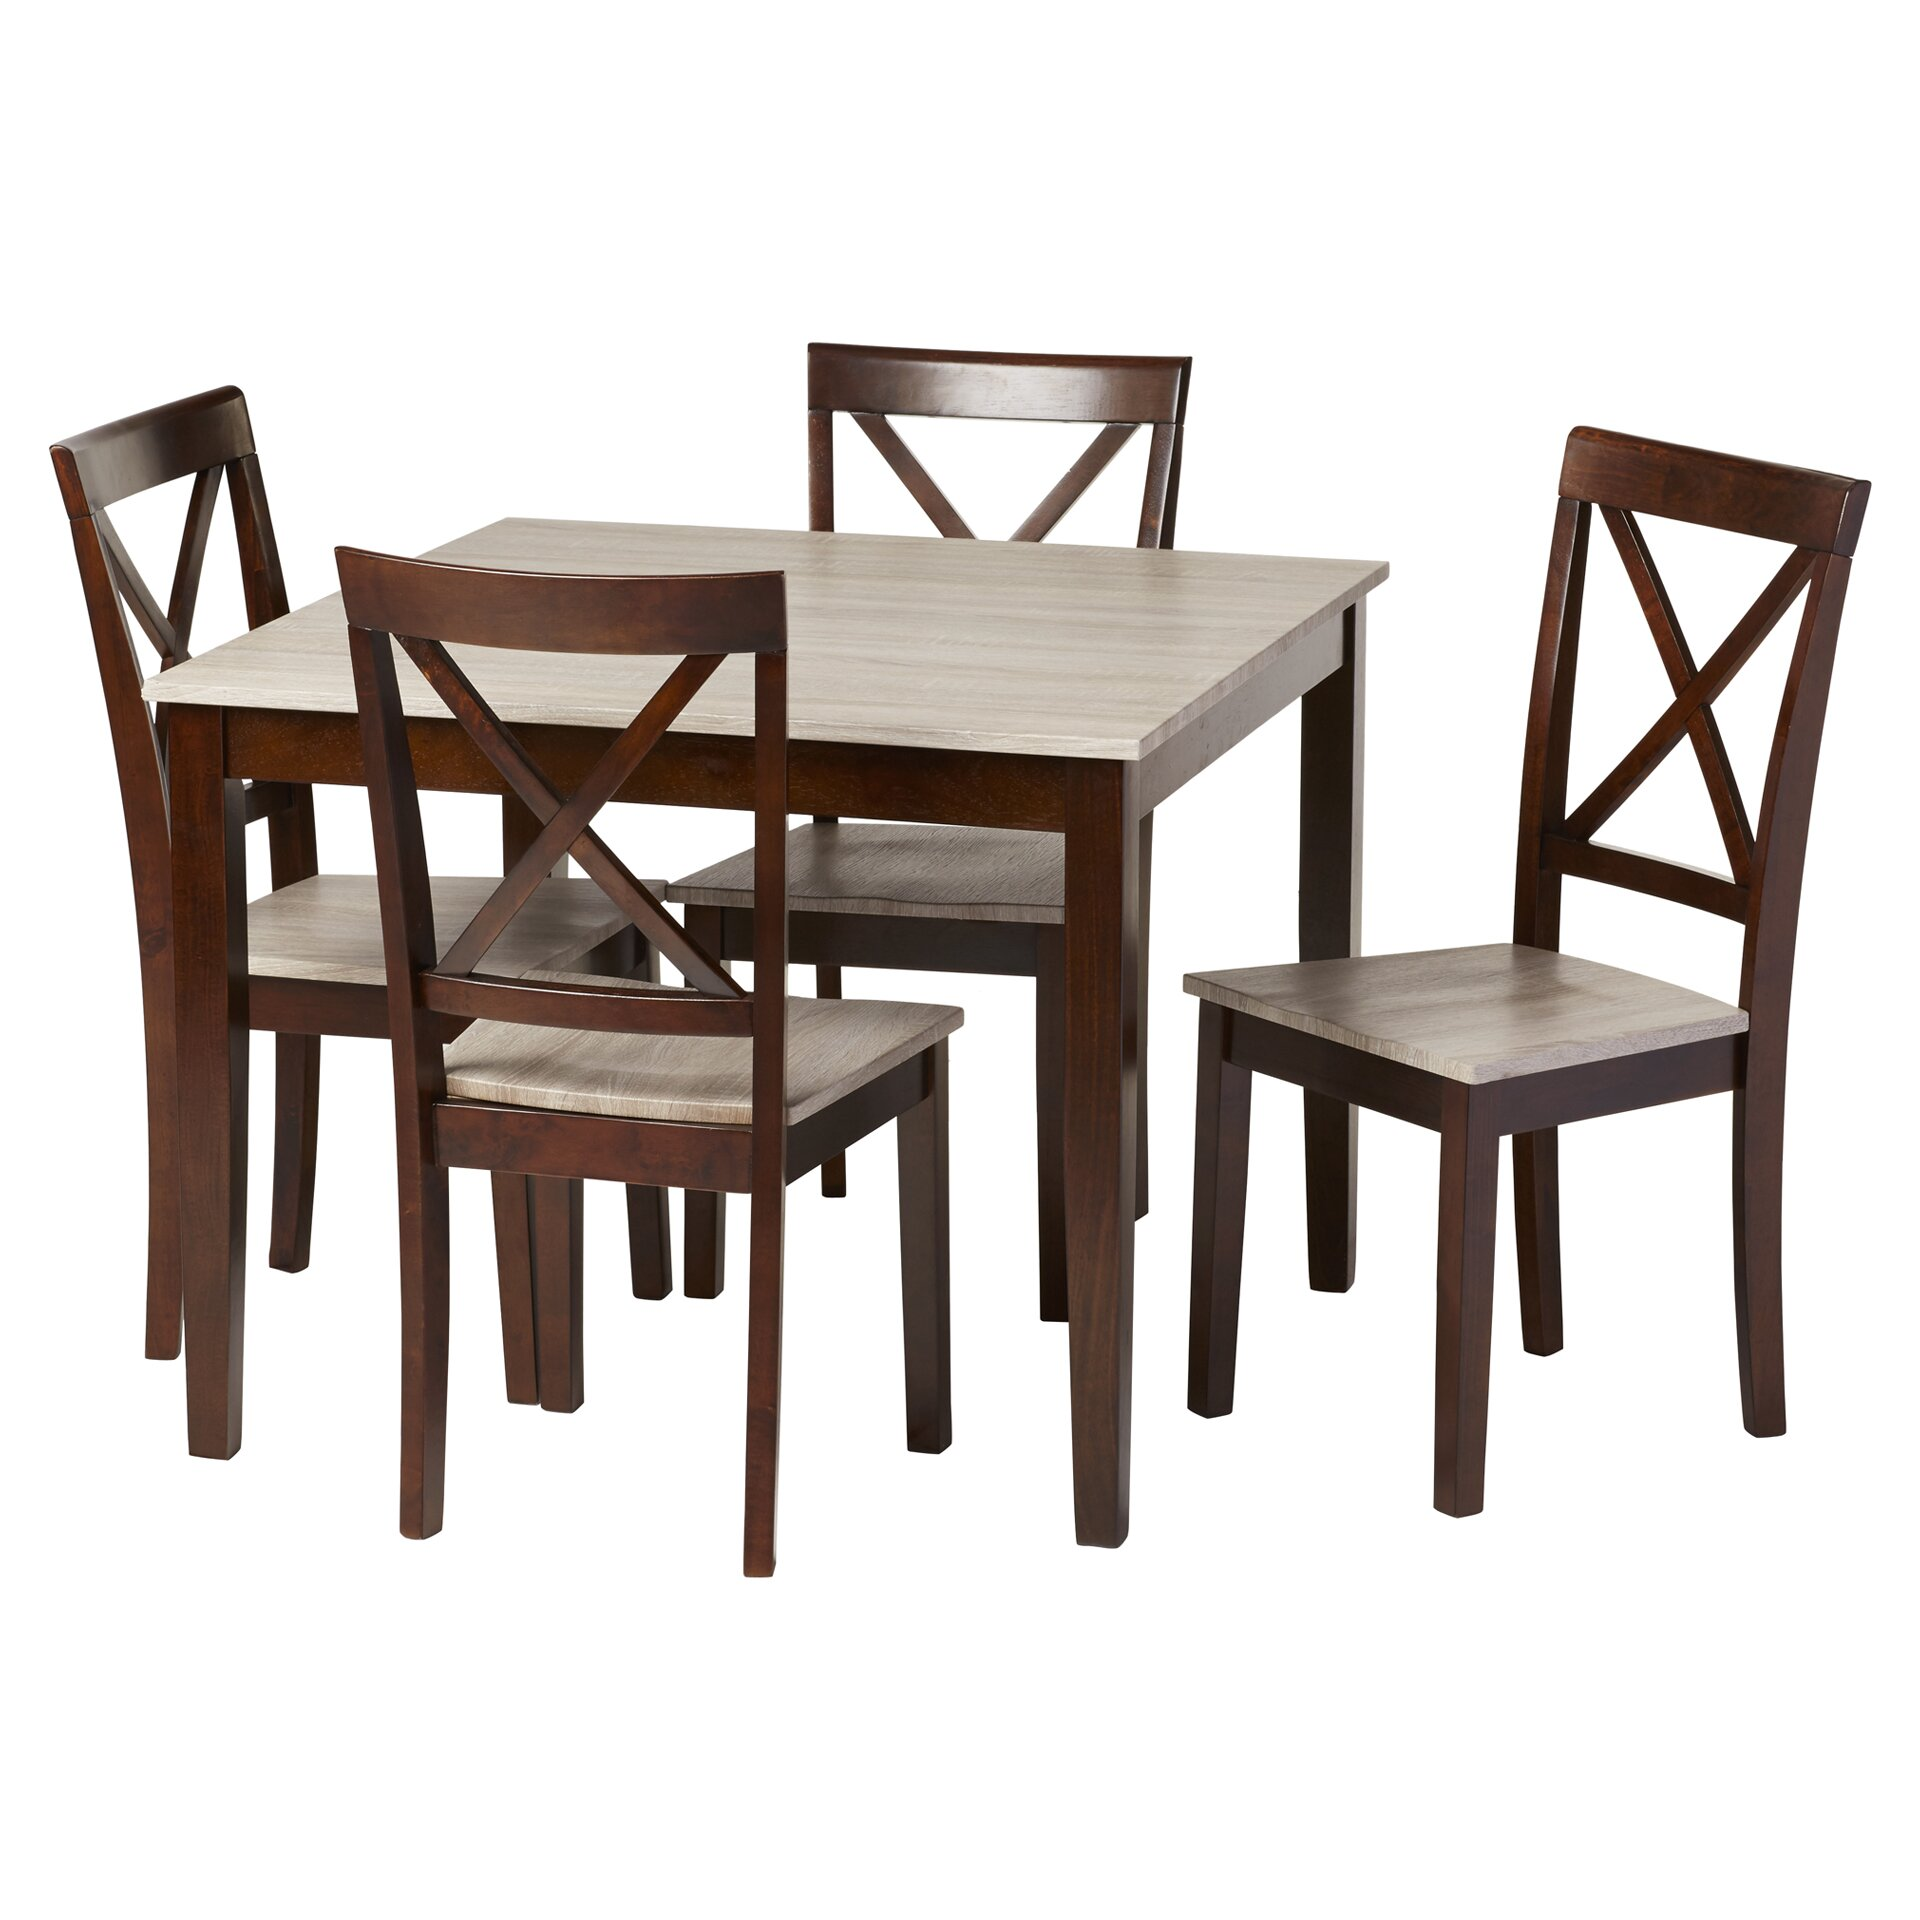 Dining Room Sets Rustic: Andover Mills Rustic 5 Piece Dining Set & Reviews